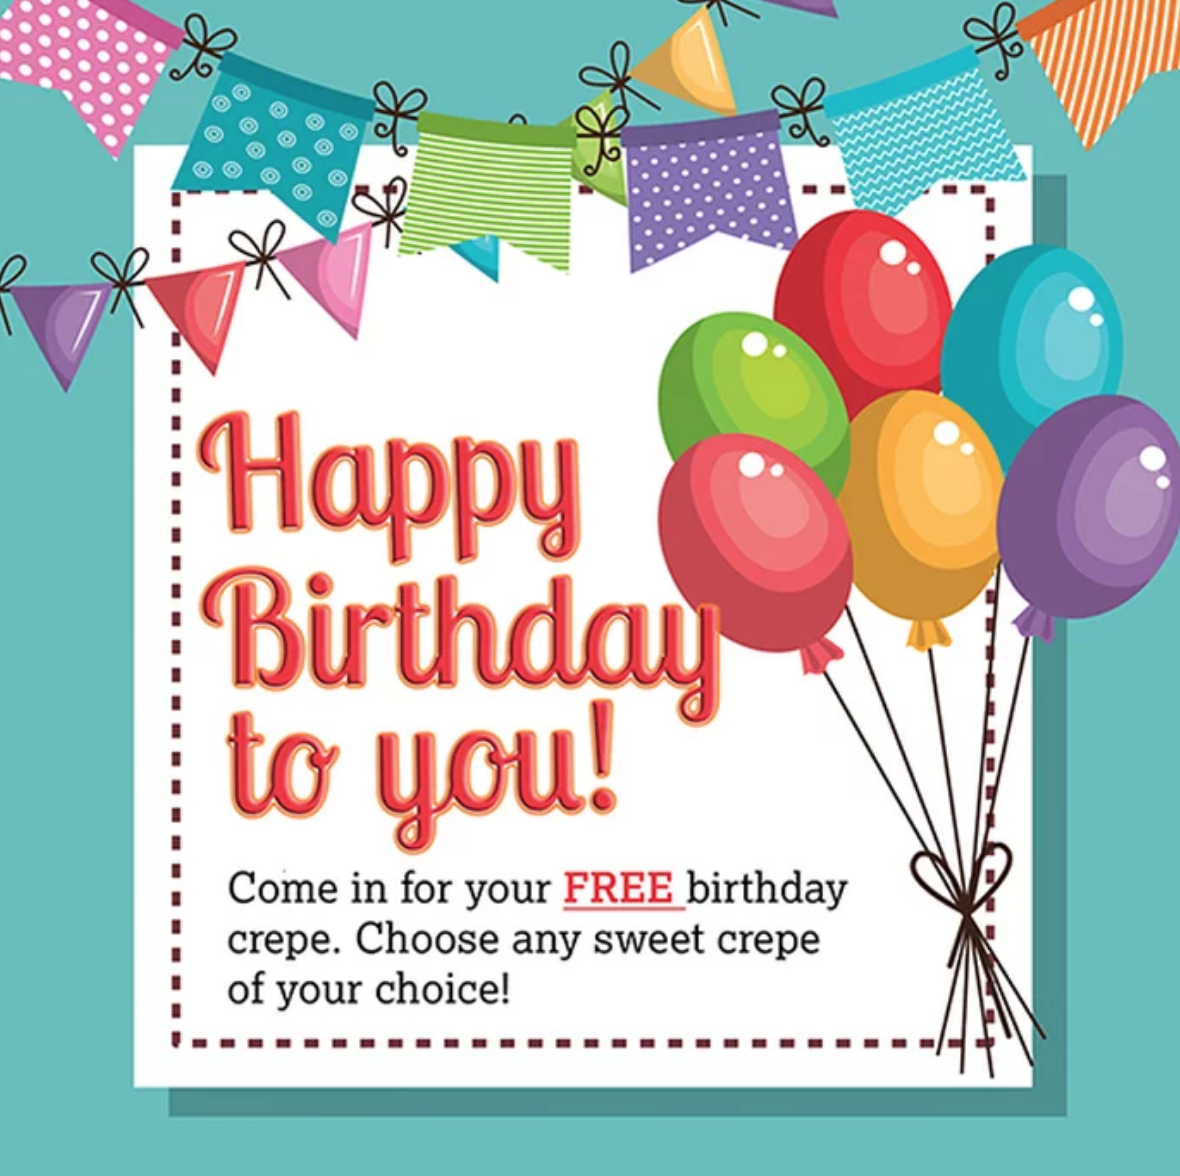 Come in for your free birthday crepe. Choose any sweet crepe of your choice!